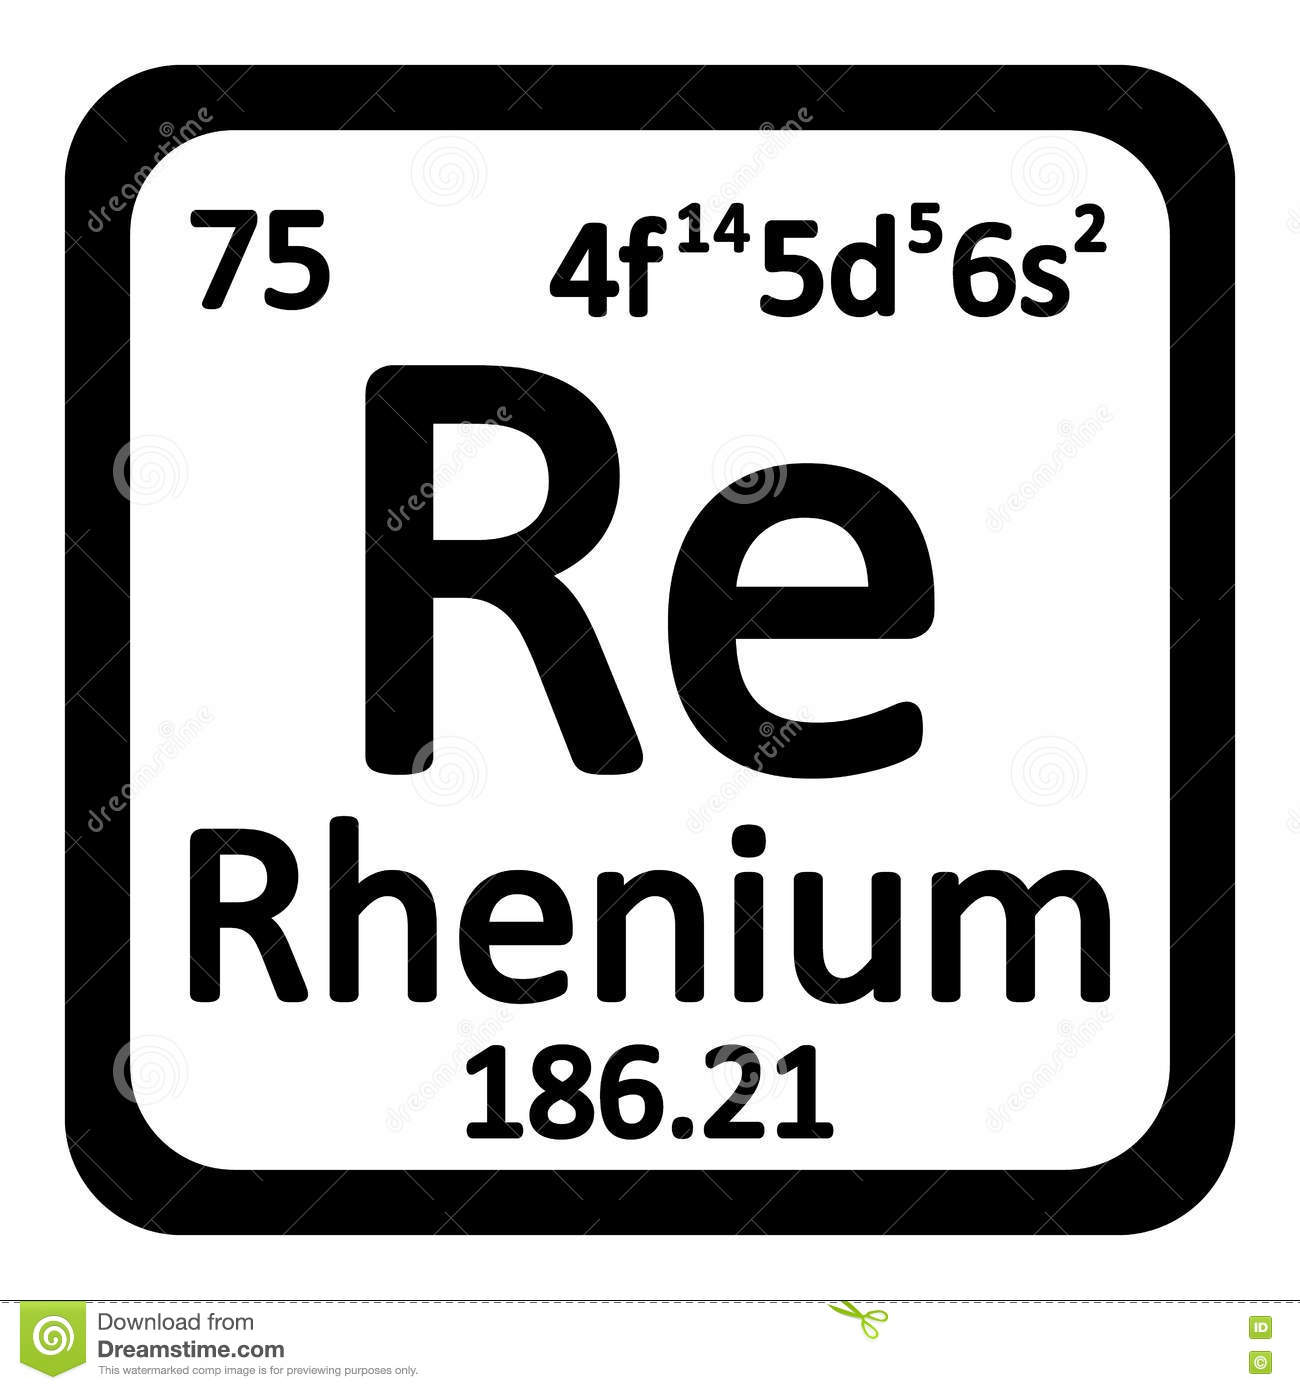 Periodic table squares gallery table design ideas rhenium symbol periodic table gallery periodic table images chemical element rhenium from the periodic table stock gamestrikefo Images